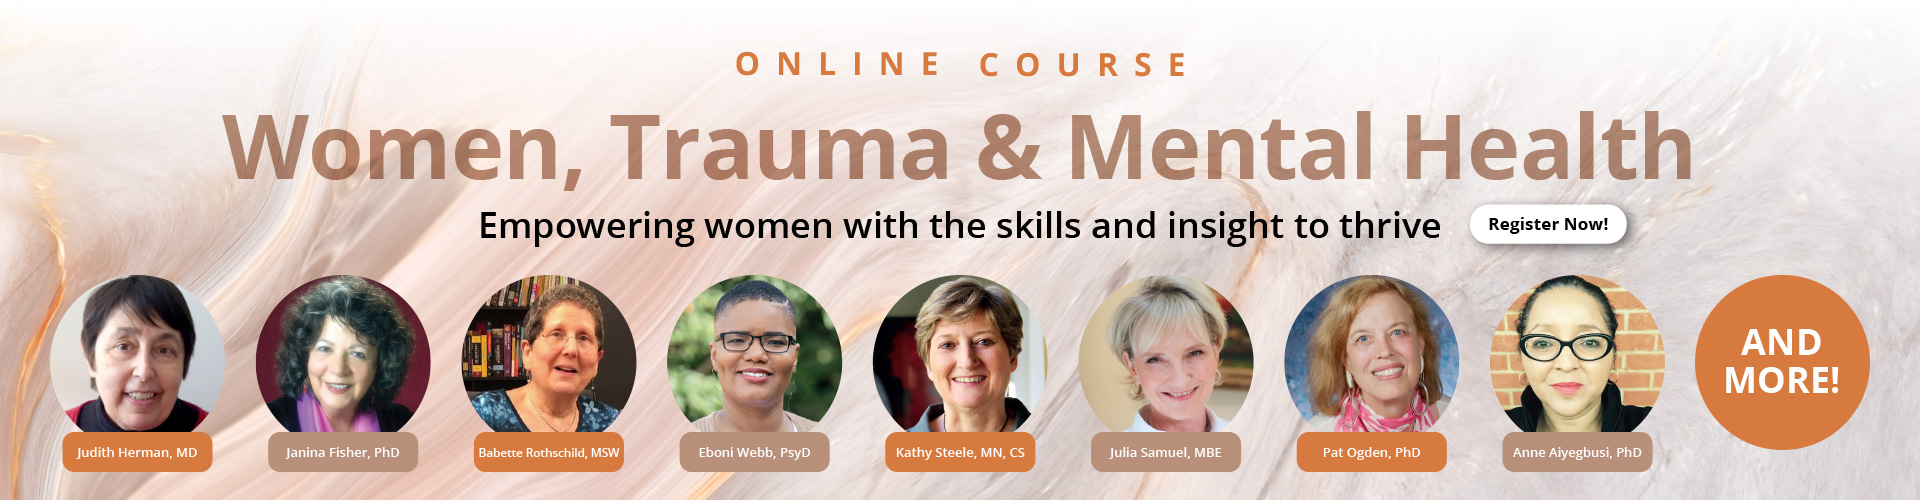 Women, Trauma and Mental Health: Empowering Women with the Skills and Insight to Thrive